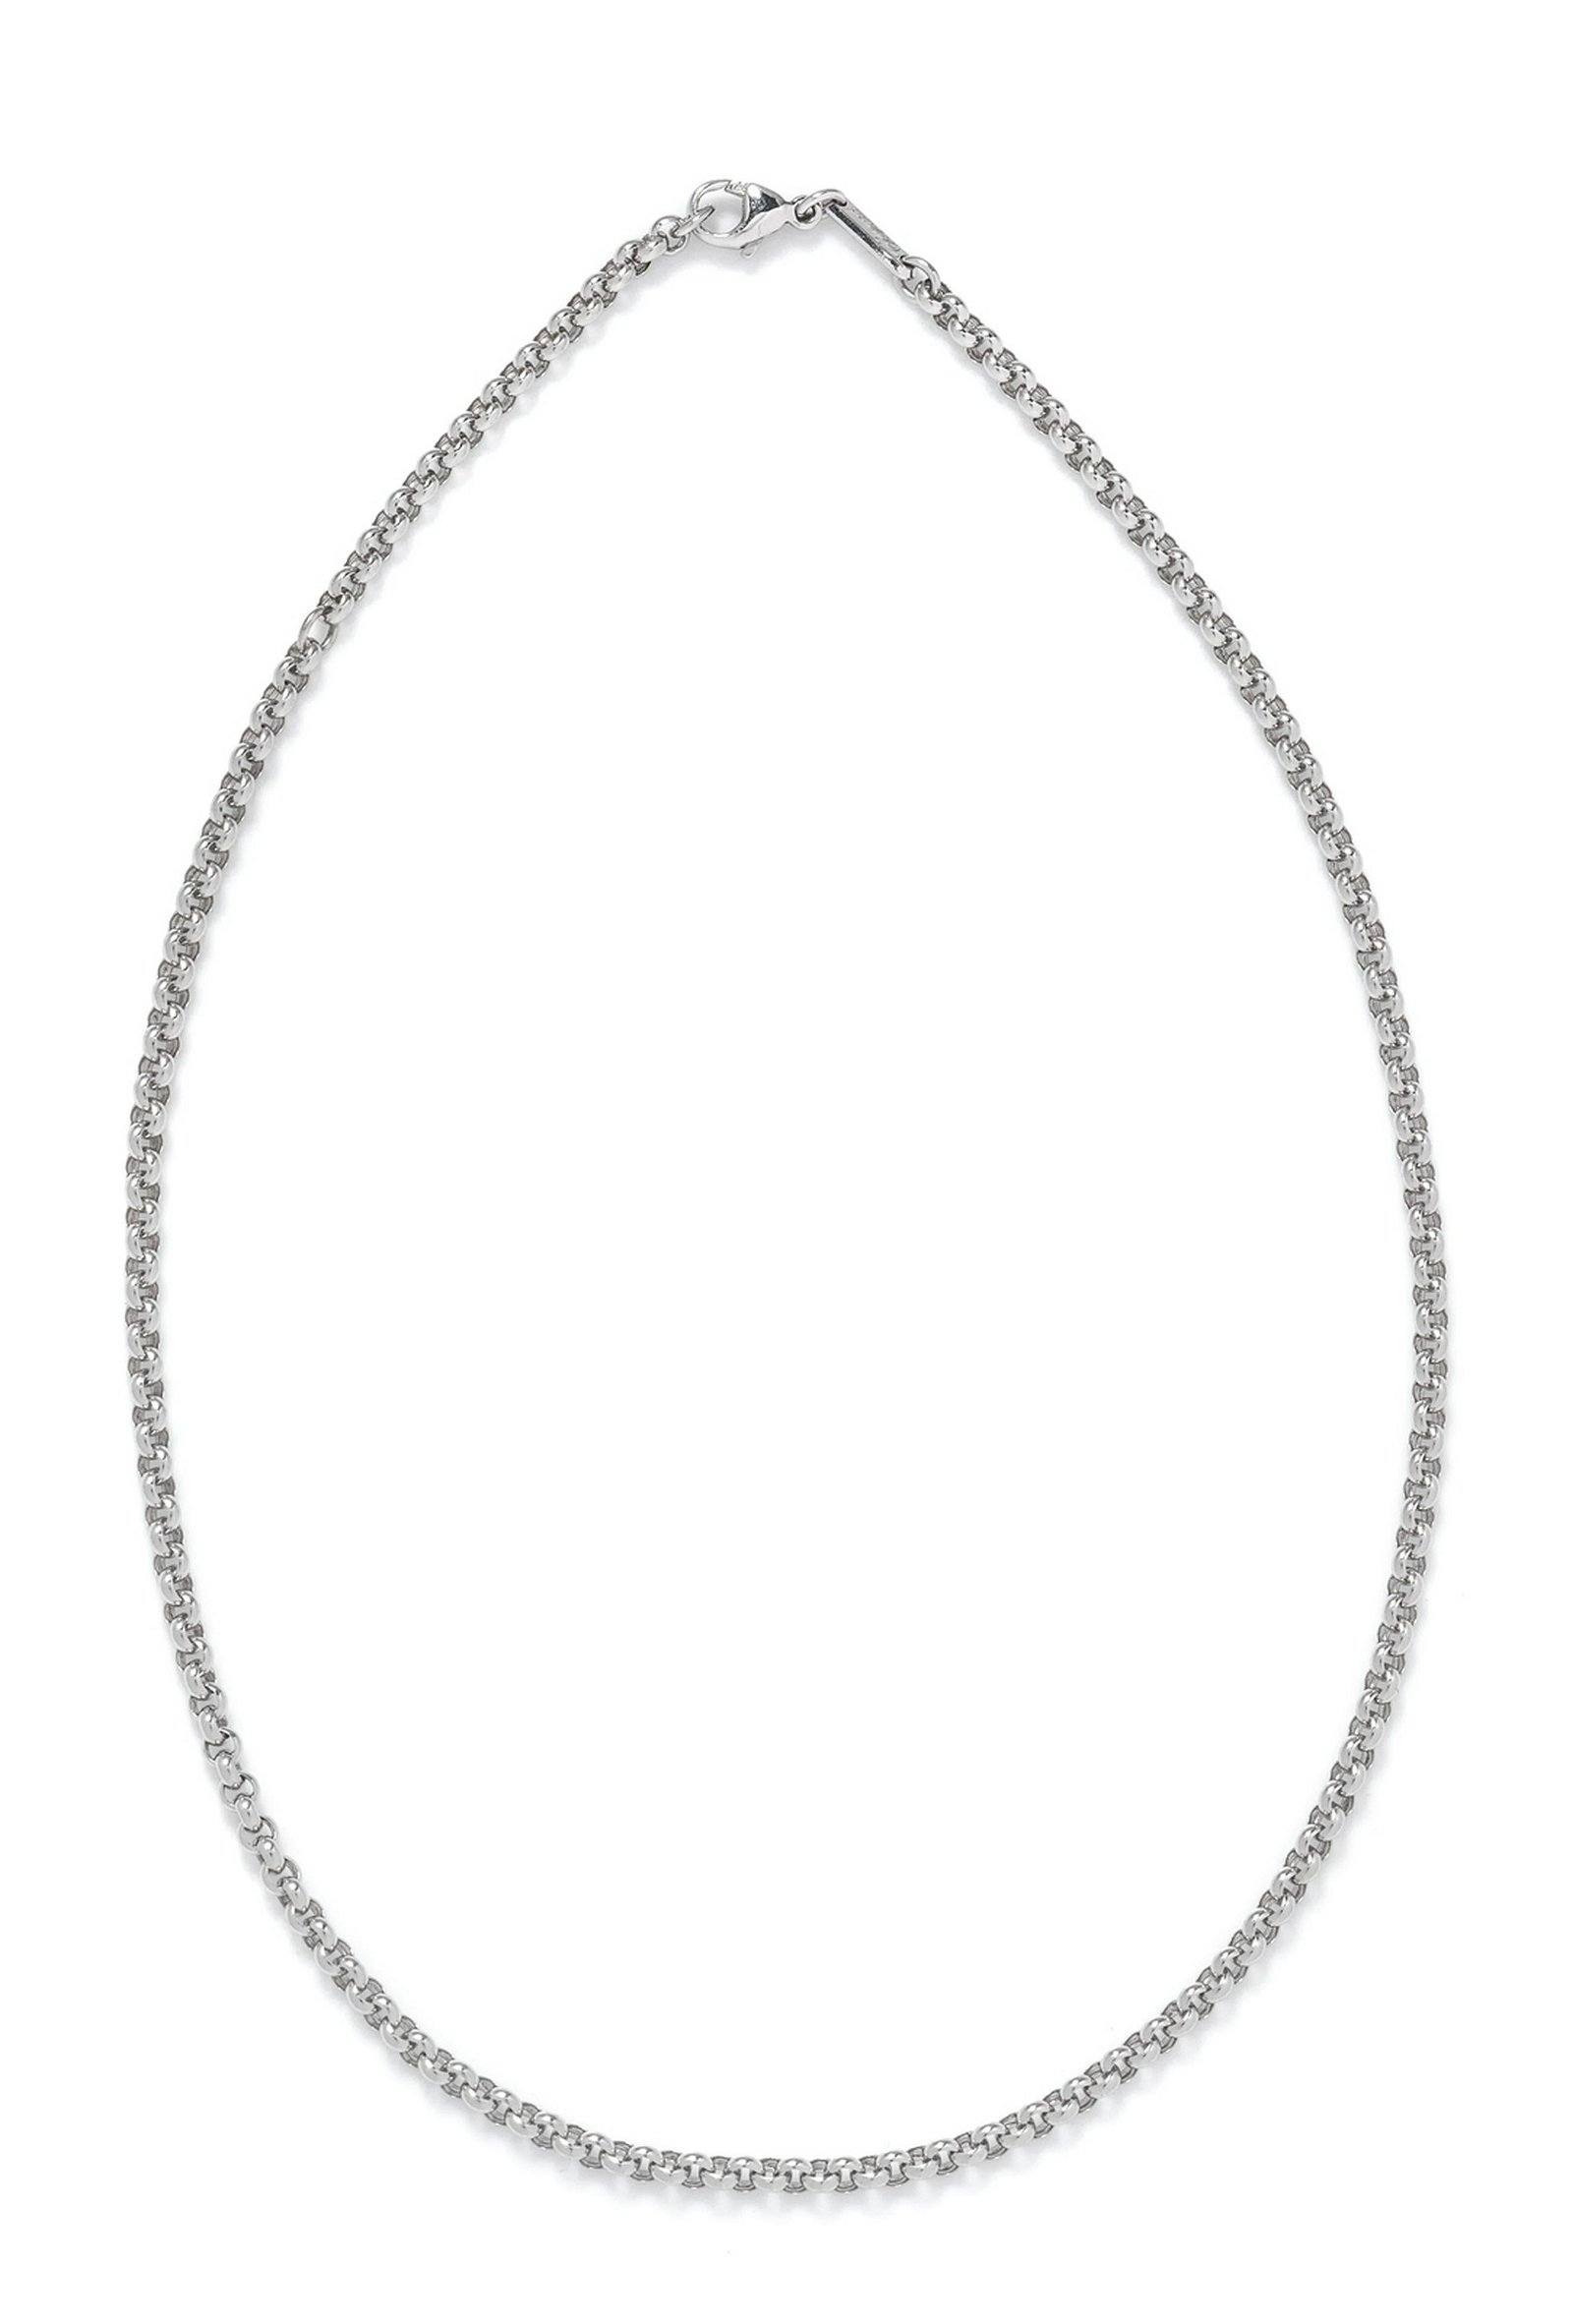 An 18 Karat White Gold Cable Link Necklace, Chopard,